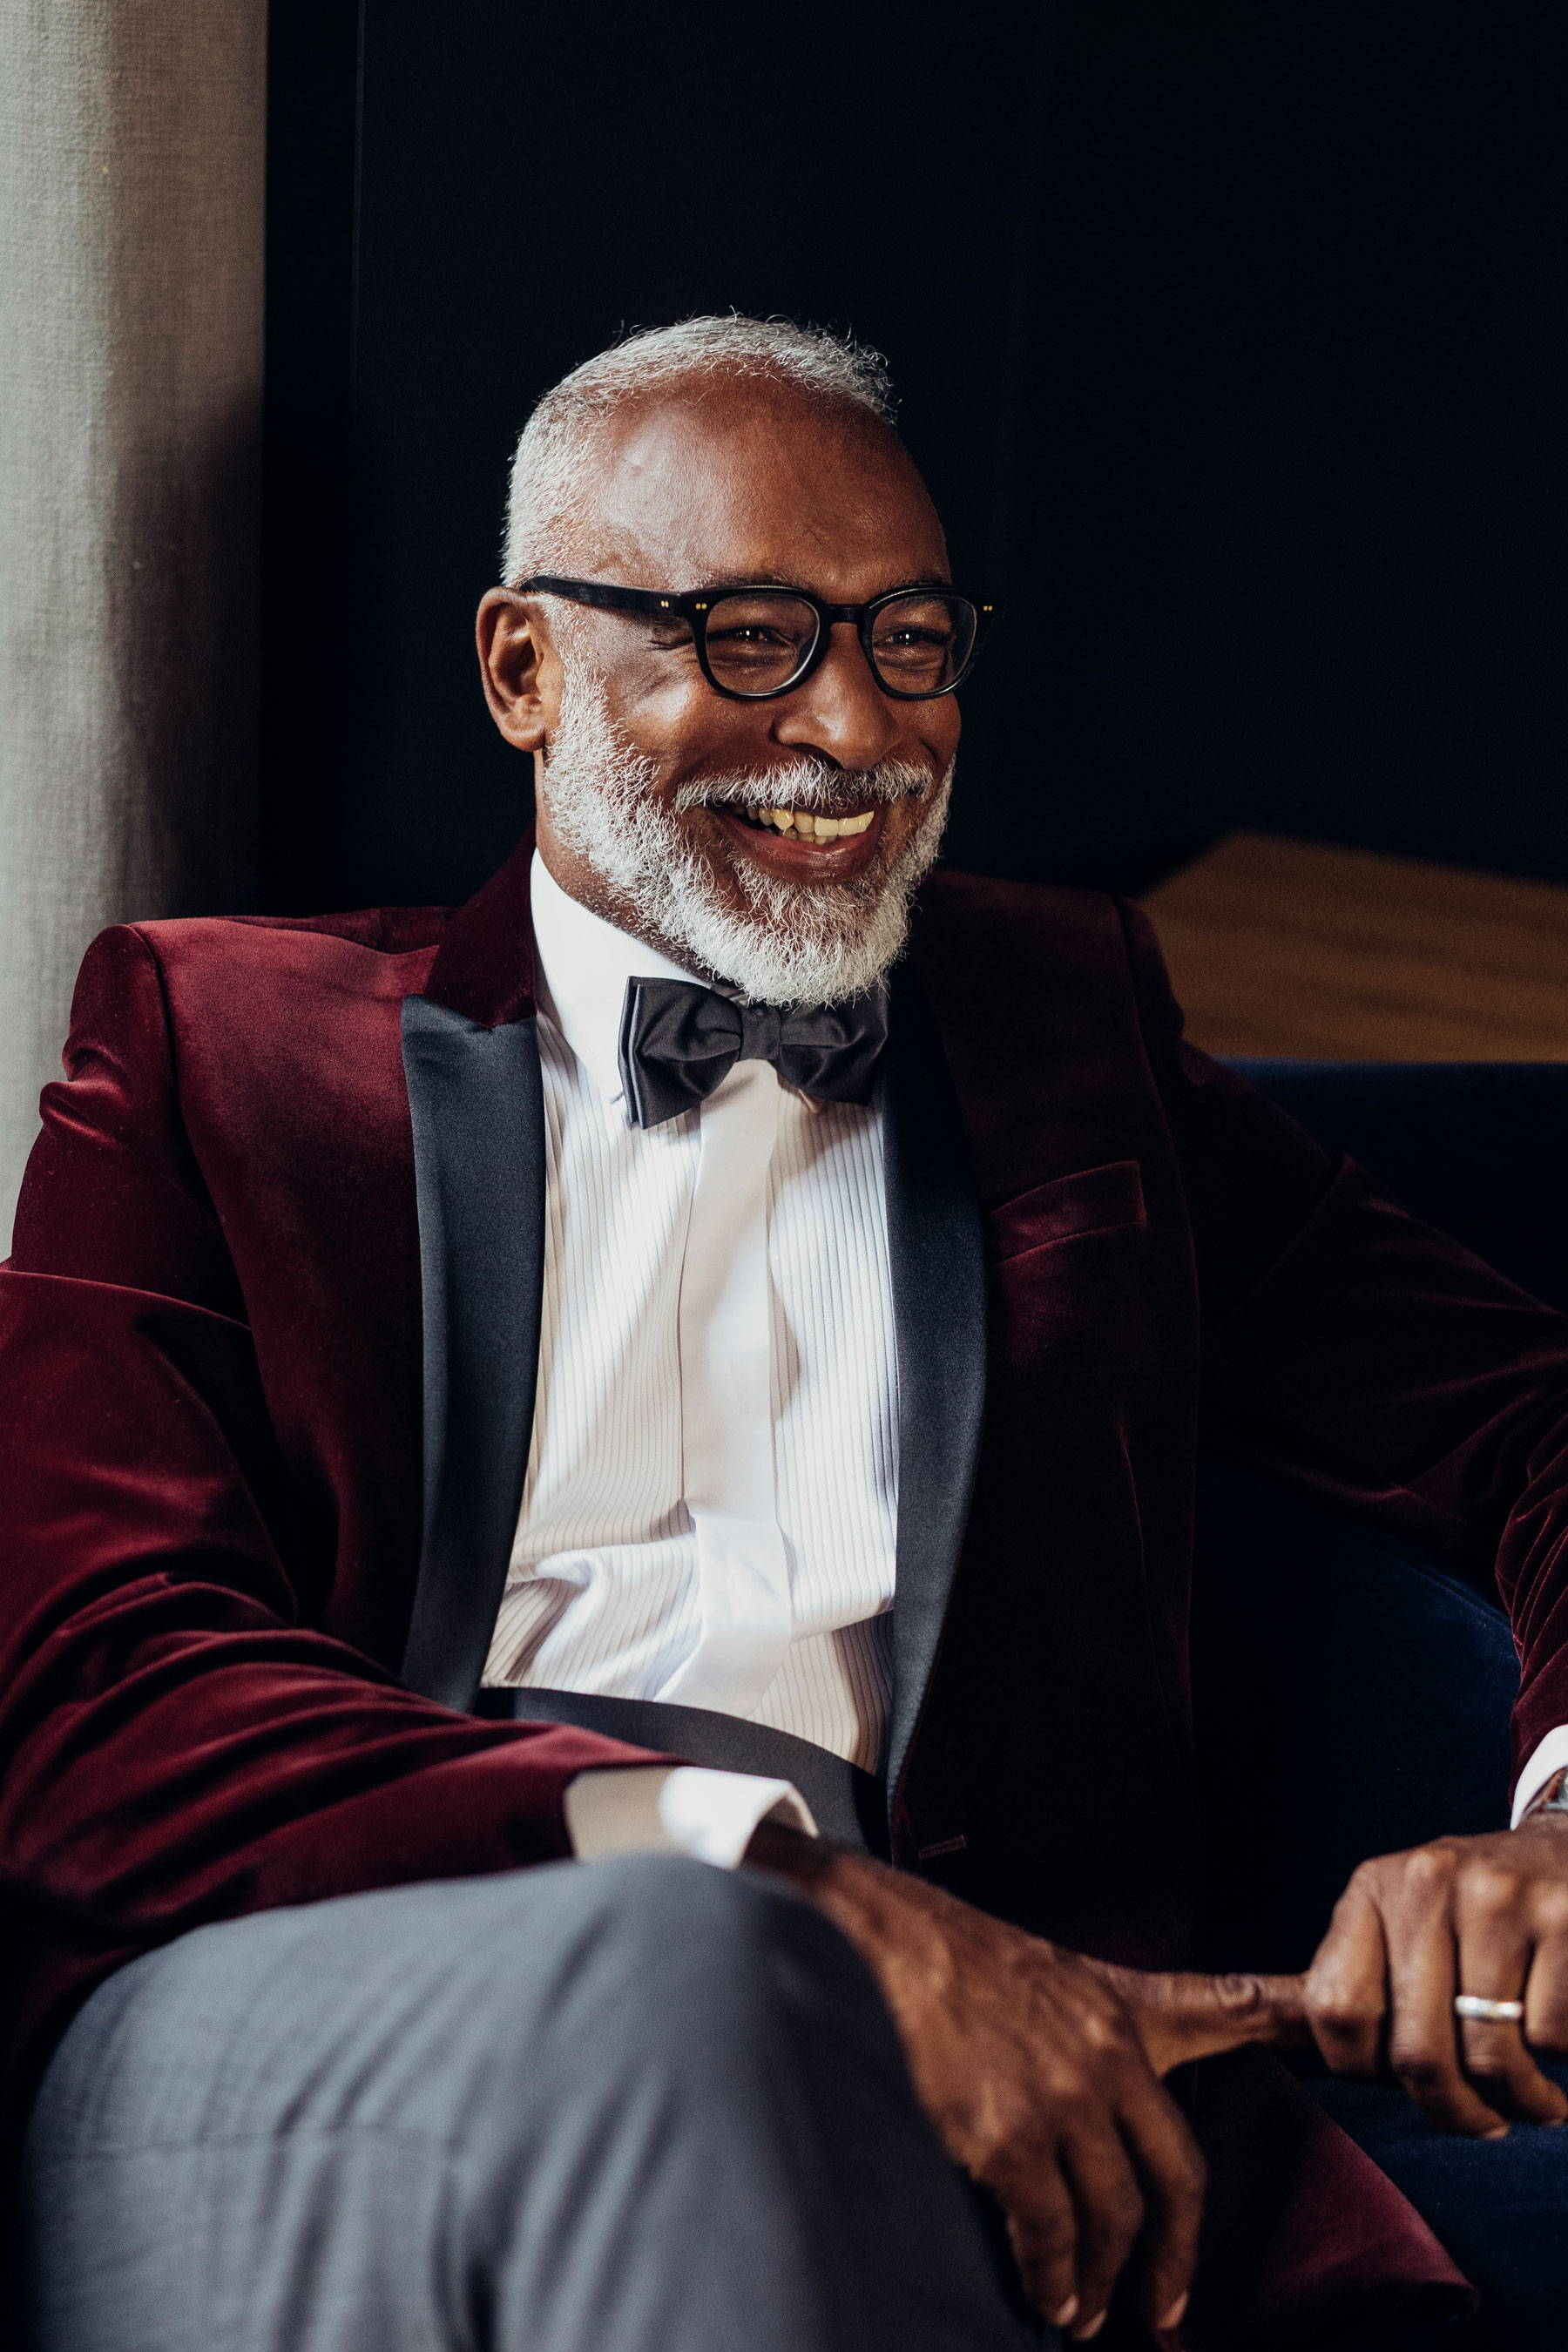 Man wearing bow tie and suit